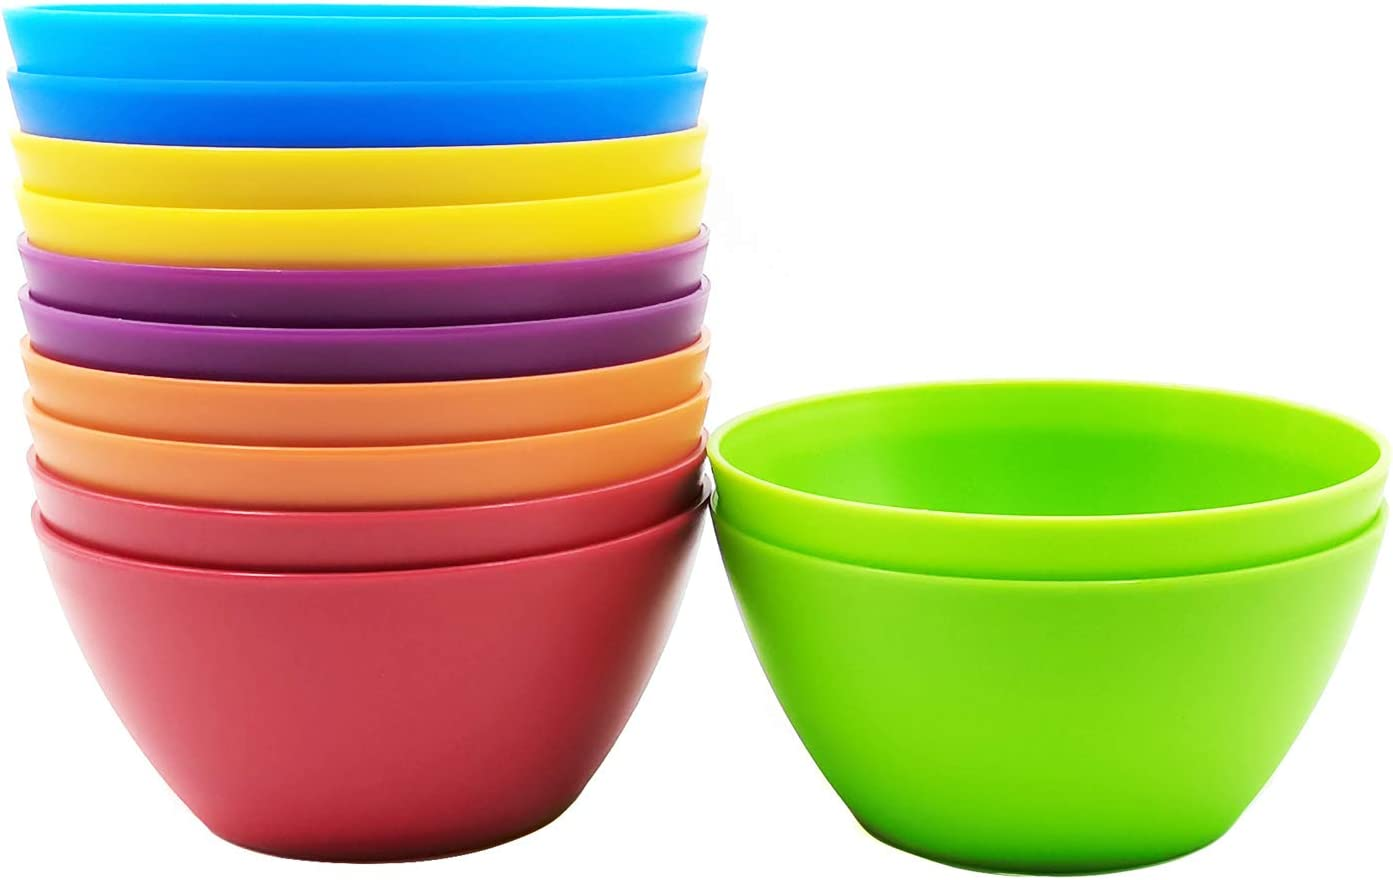 28-ounce Plastic Bowls 70% OFF Topics on TV Outlet for Cereal or Salad in of Assor set 6 12